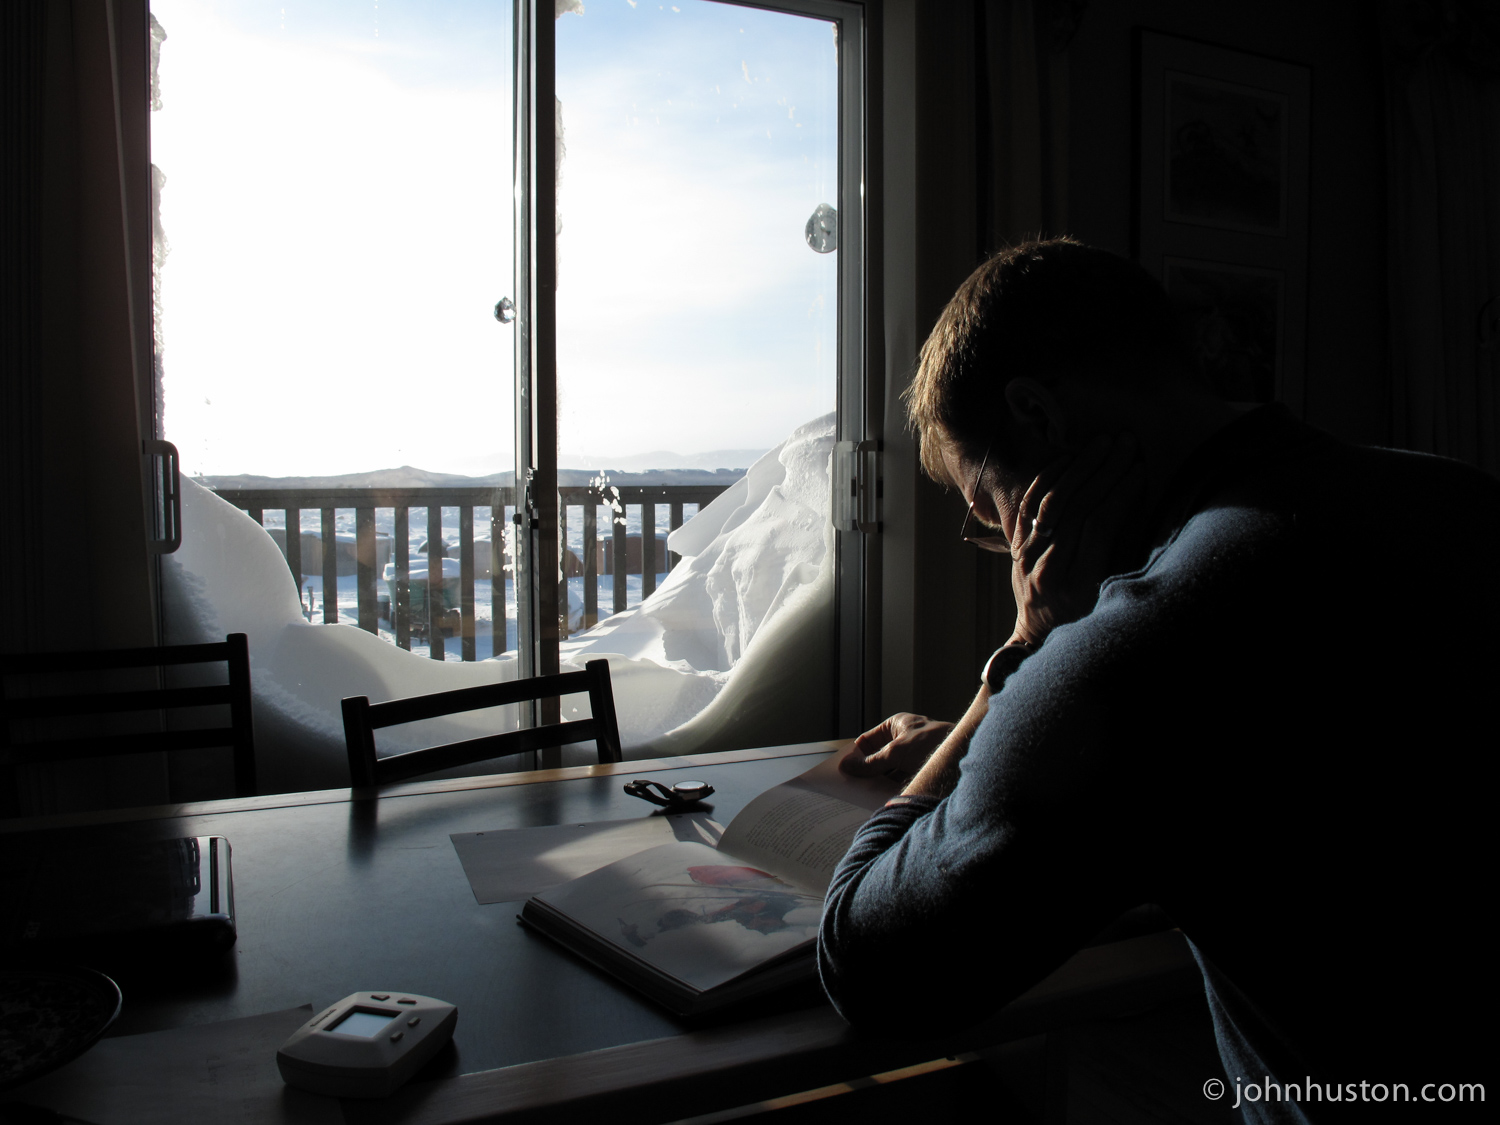 Tyler reads a book in Norwegian about a 2006 unsupported North Pole ski expedition. Frobisher bay is out the window.